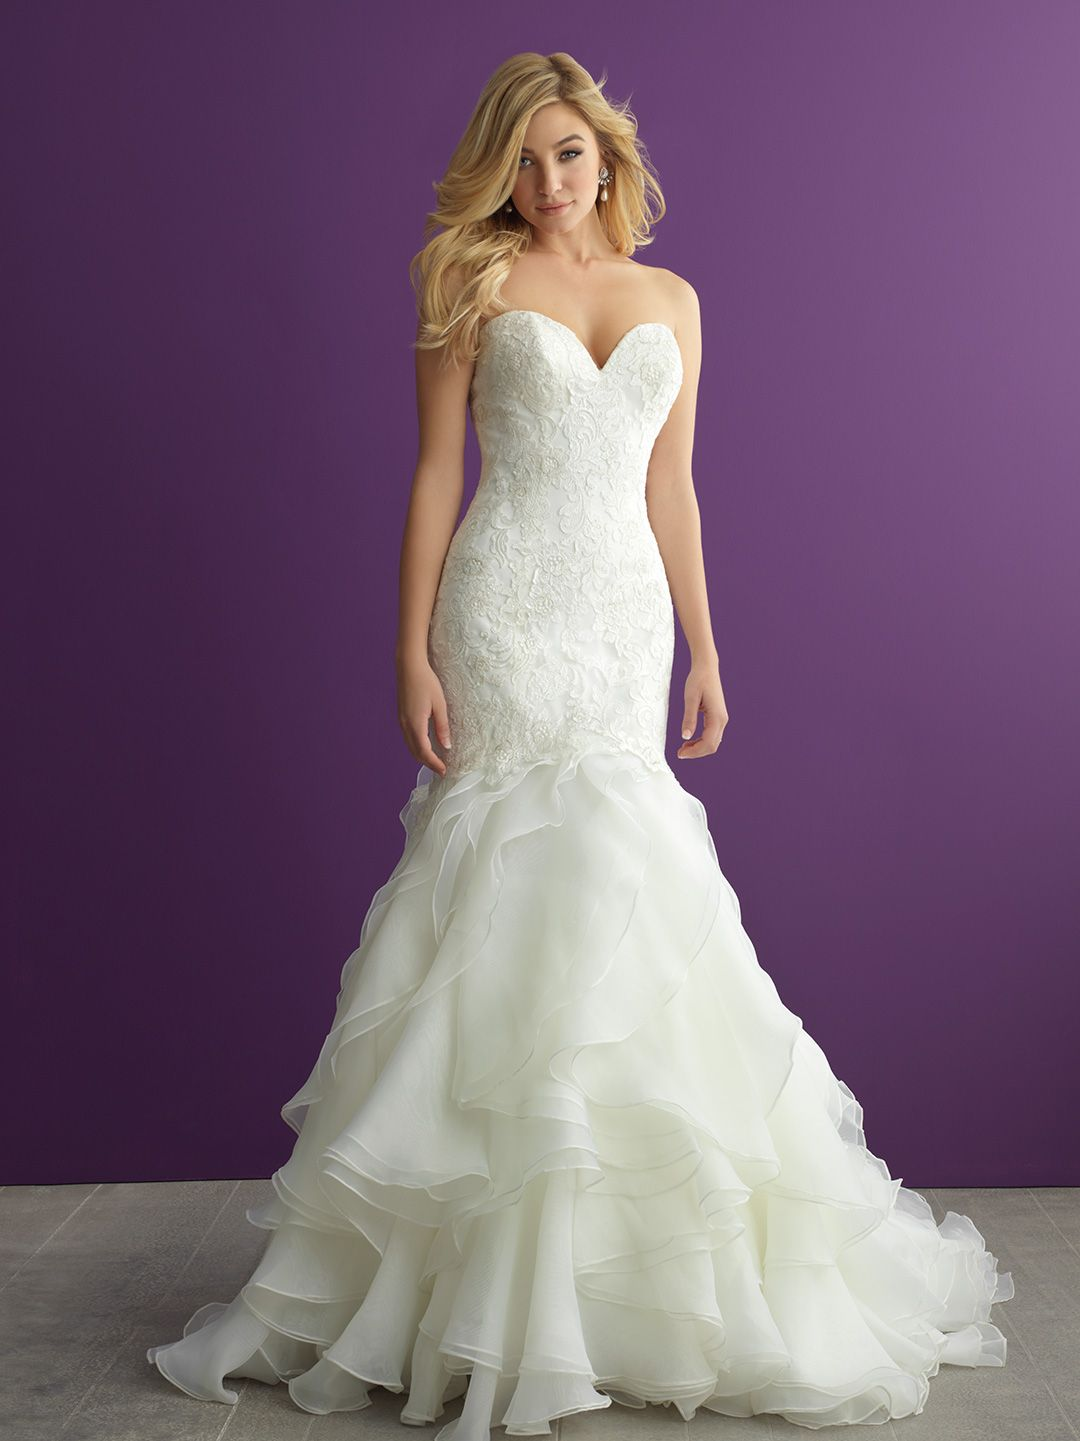 Allure Romance Wedding Dress Style 2964. This incredible fishtail ...